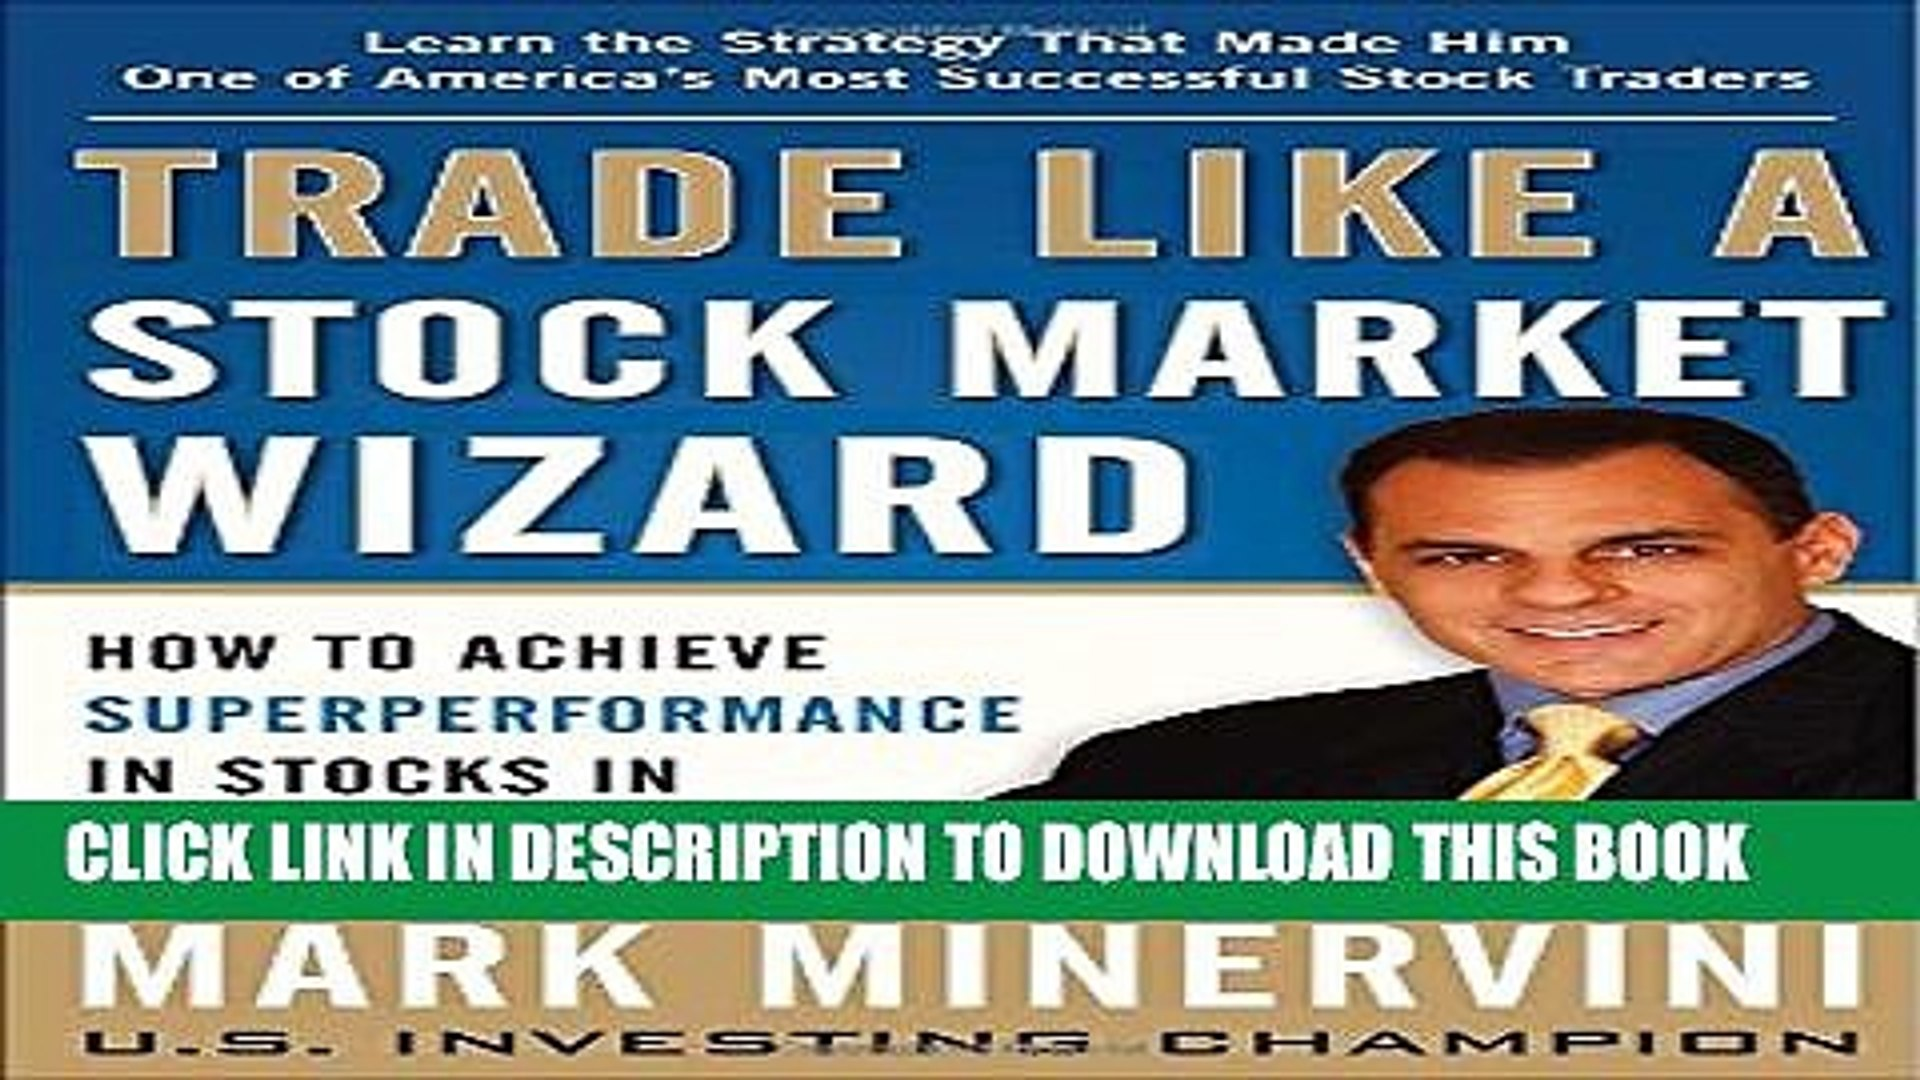 [PDF] Trade Like a Stock Market Wizard: How to Achieve Super Performance in Stocks in Any Market